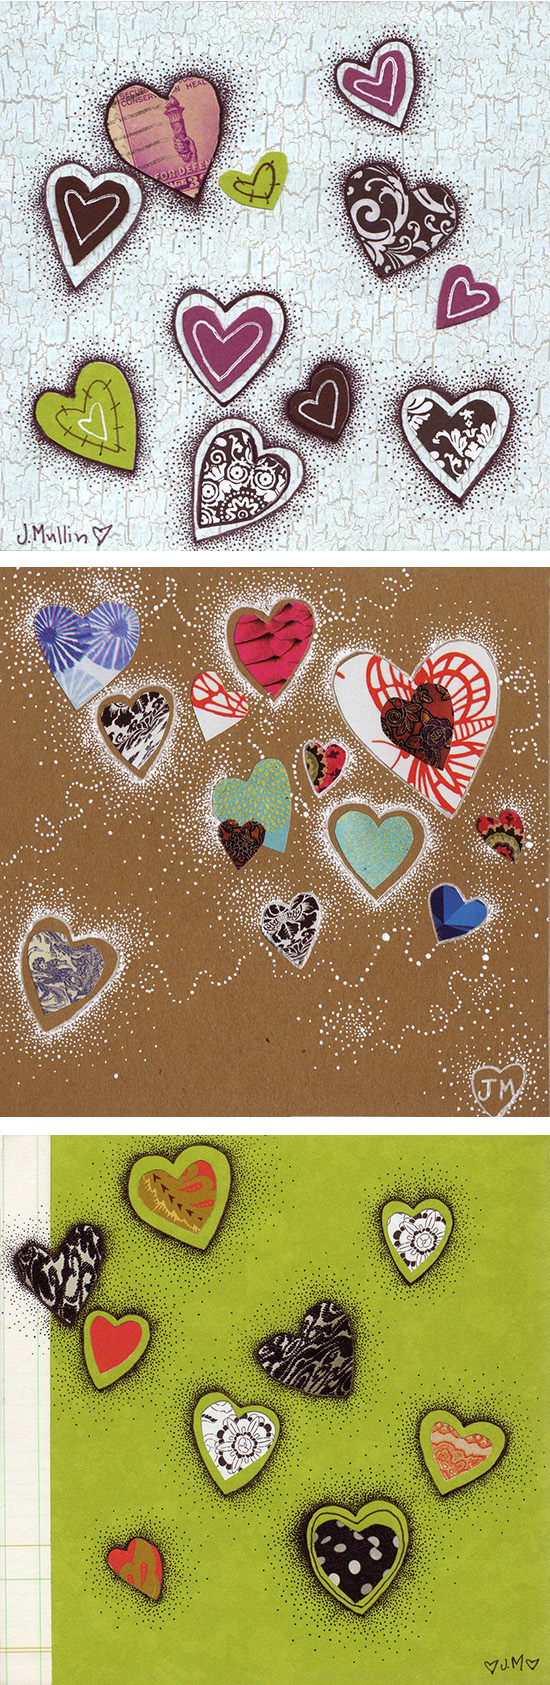 Mixed media heart art I made back in 2011. All have since been sold.